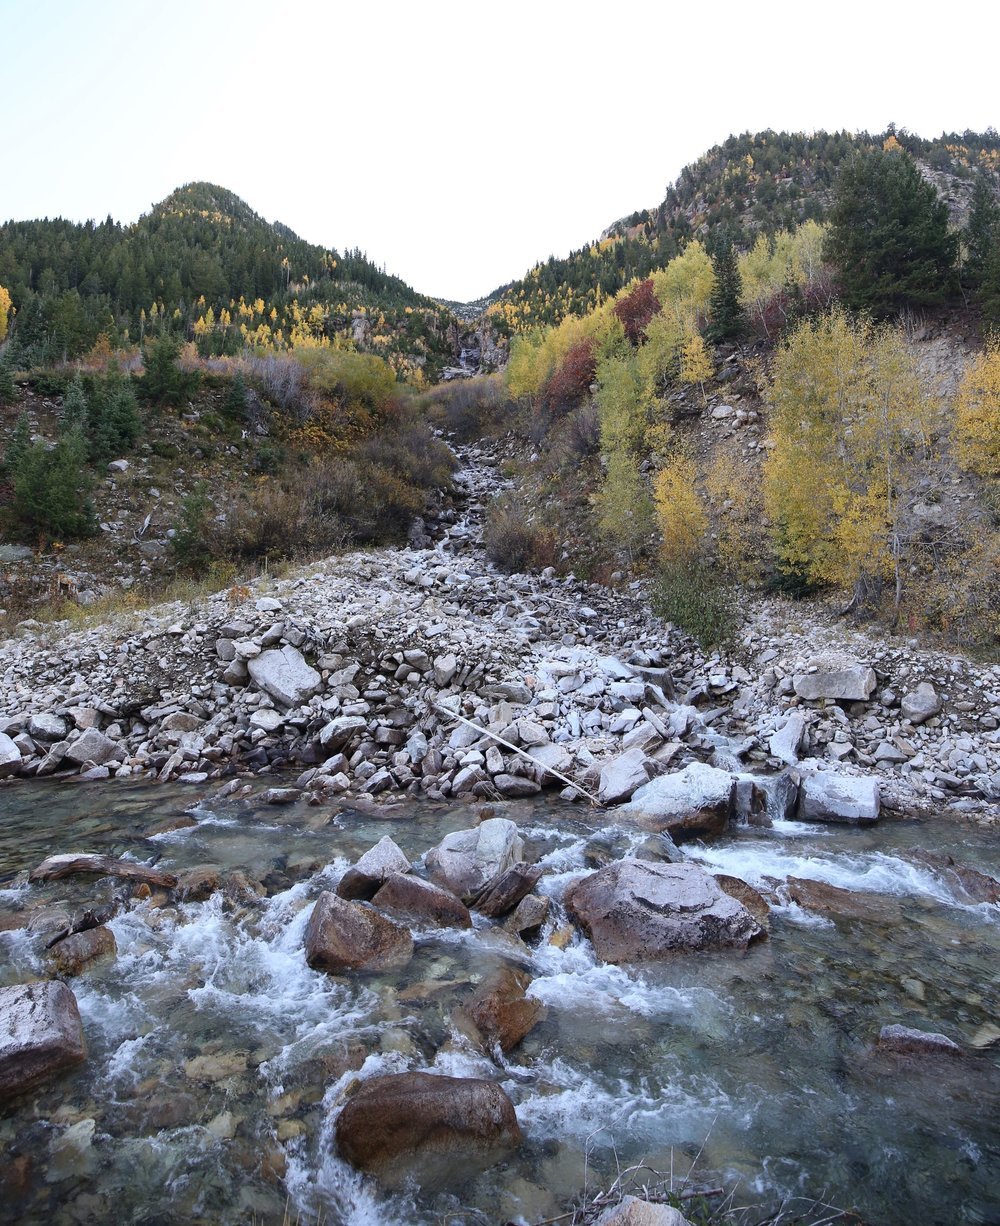 Snow melt forms rivers in the mountains.